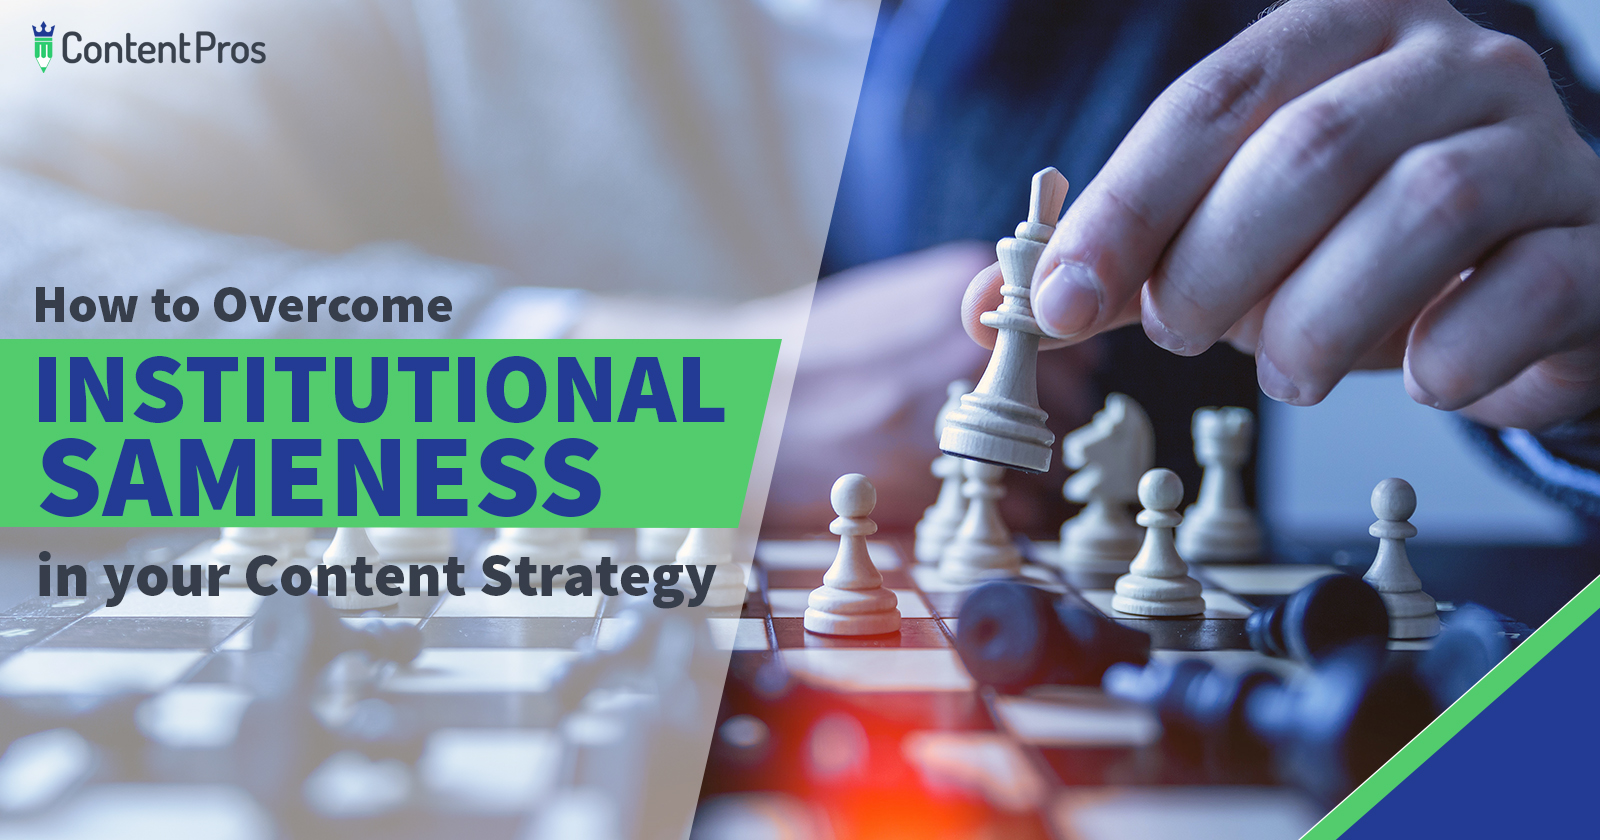 How to overcome institutional sameness in your content marketing strategy